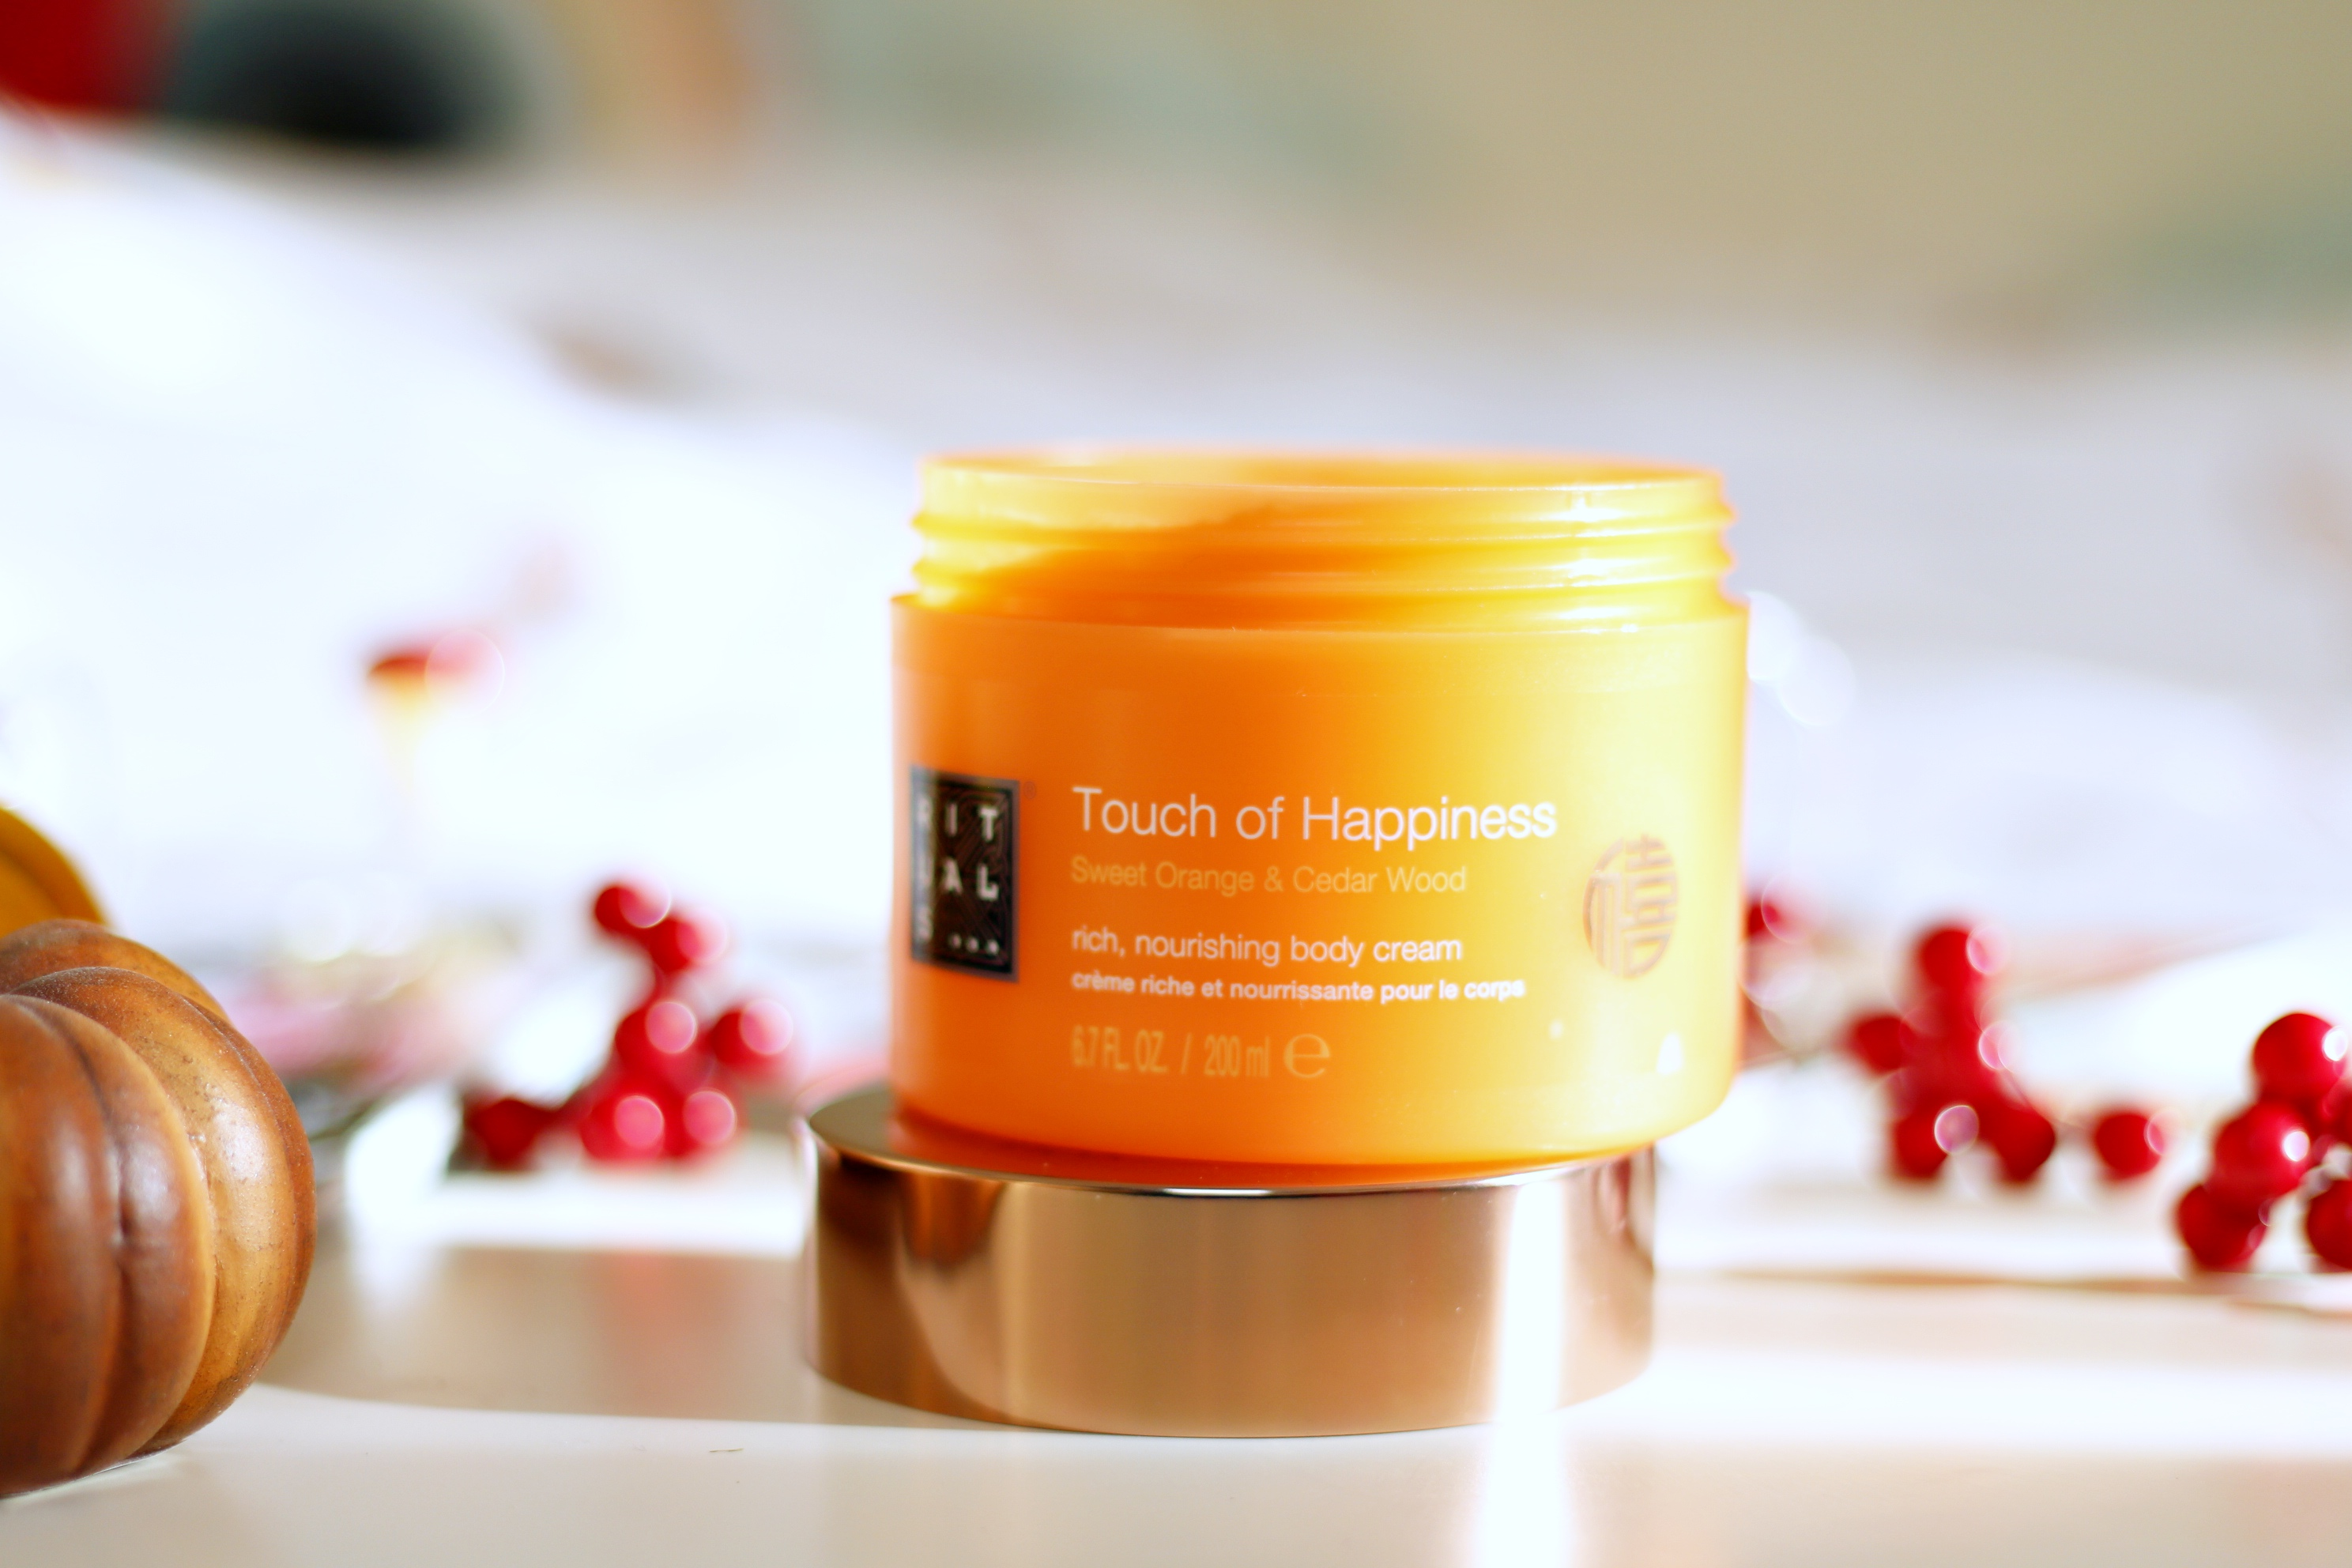 Happily Hydrated With The Rituals Touch Of Happiness Body Cream